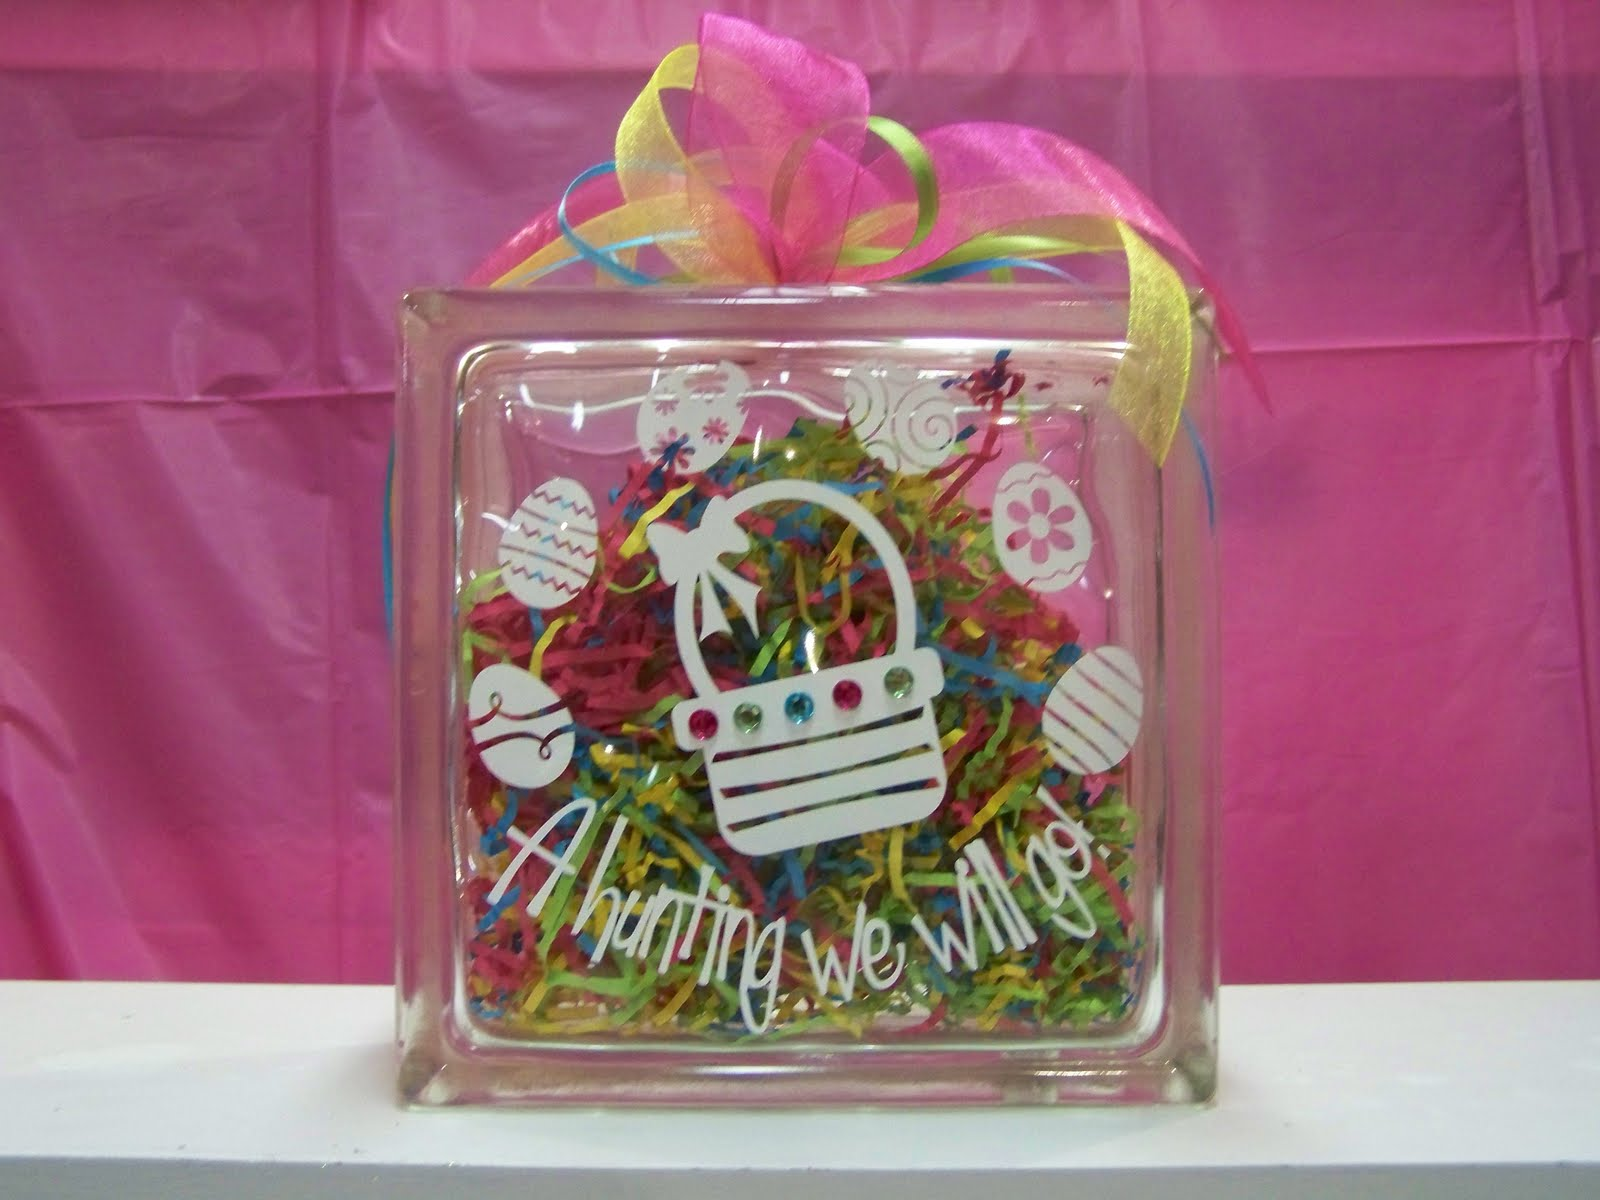 Heartfelt wall hangings glass bock collection for Glass block crafts pictures